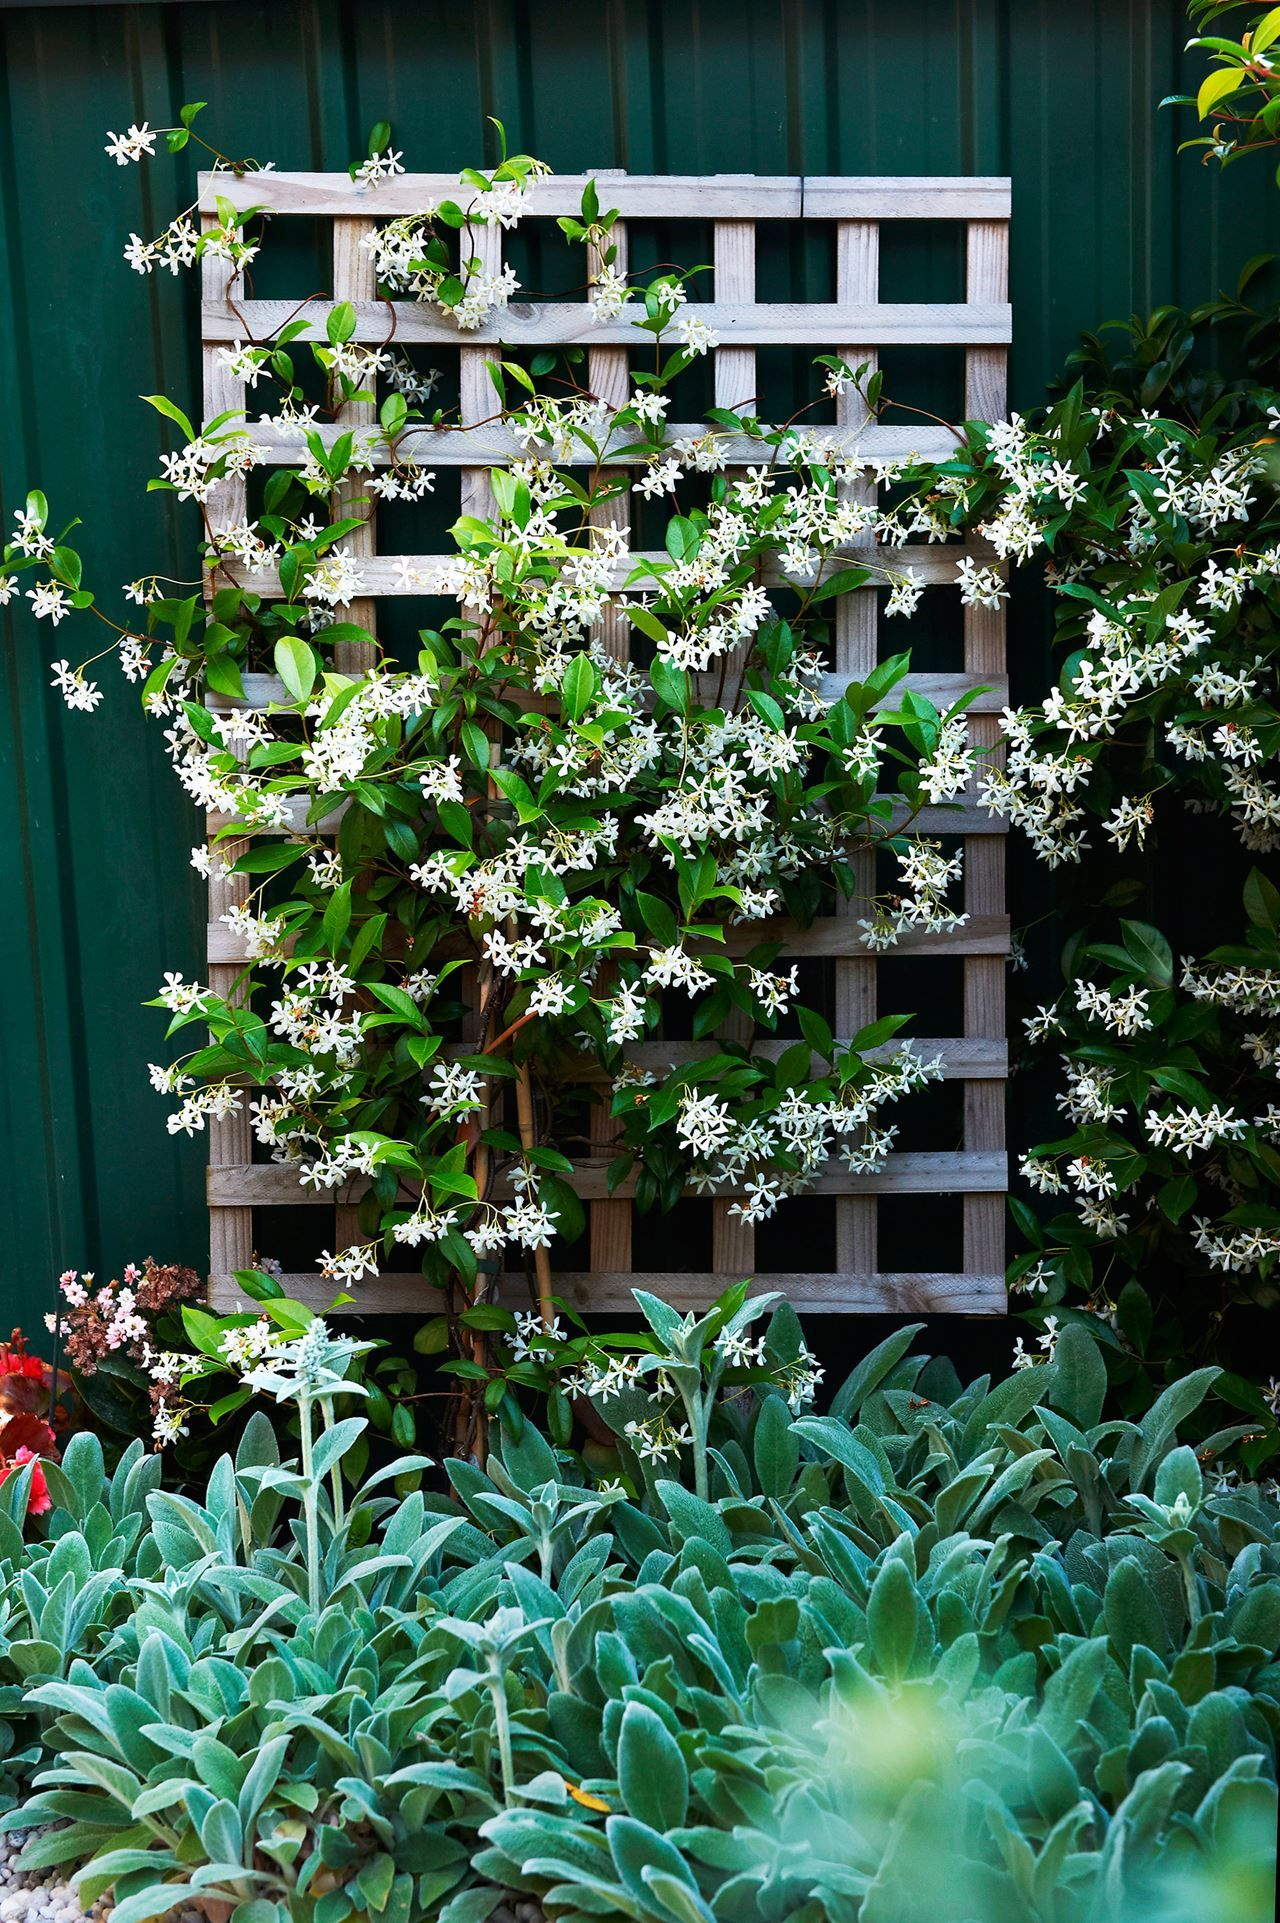 Climbing Plants 7 Fast Growing Climbers Vines And Creepers